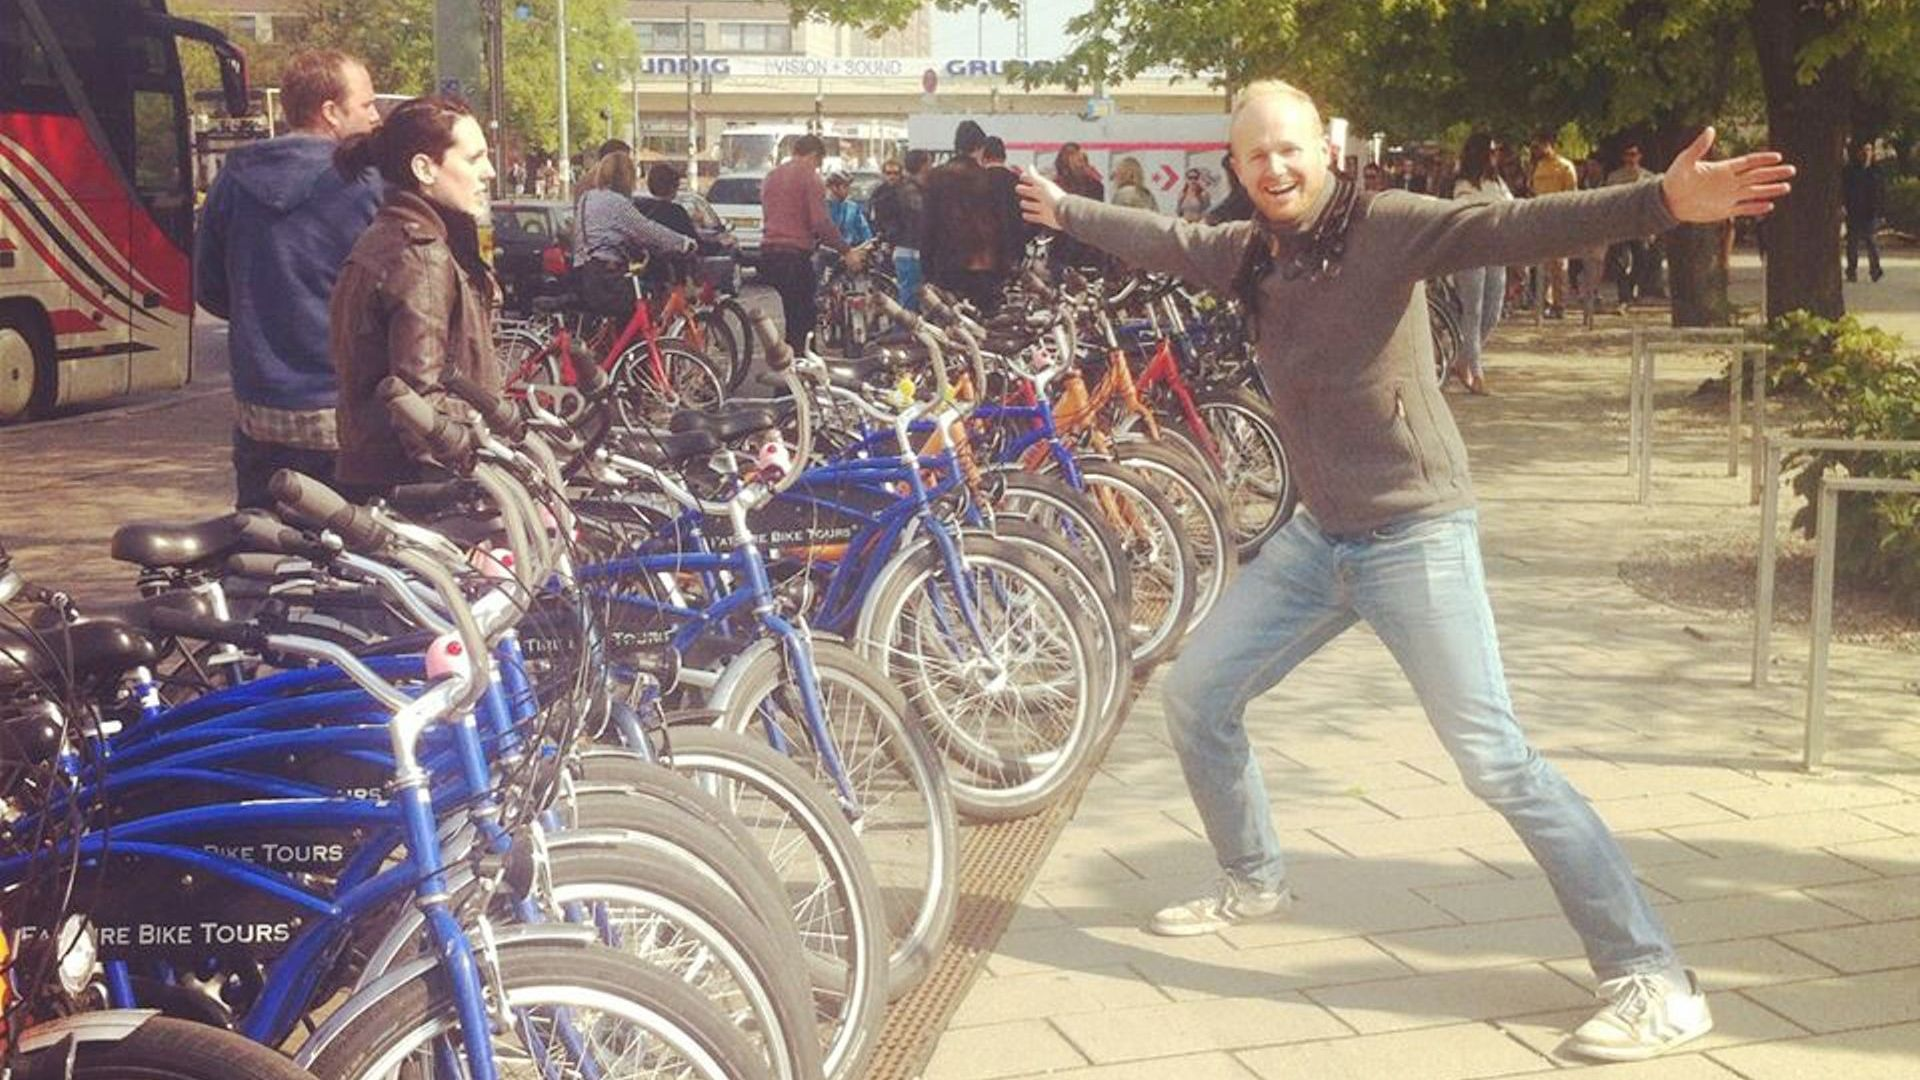 People standing with their bikes in Berlin